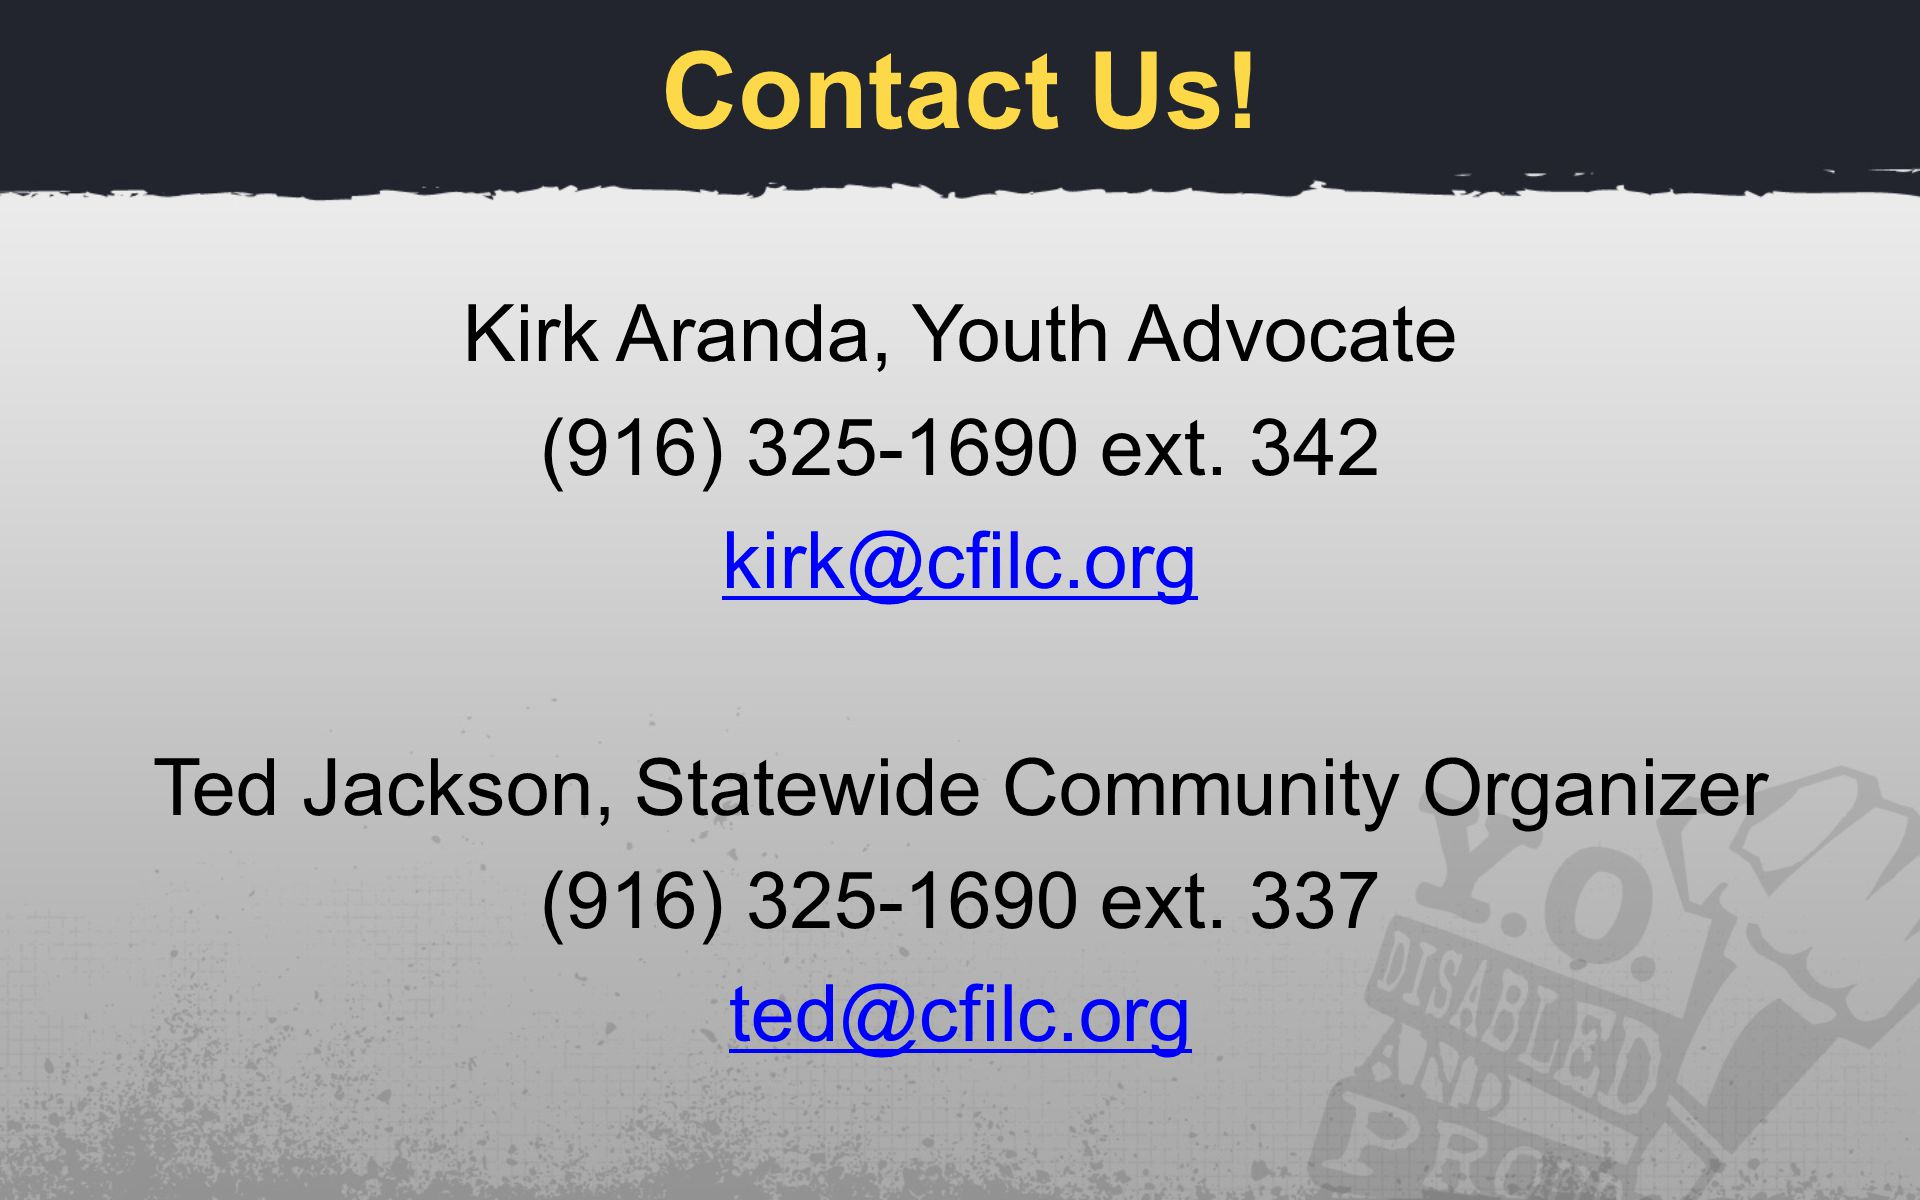 Contact Us. Kirk Aranda, Youth Advocate (916) ext.